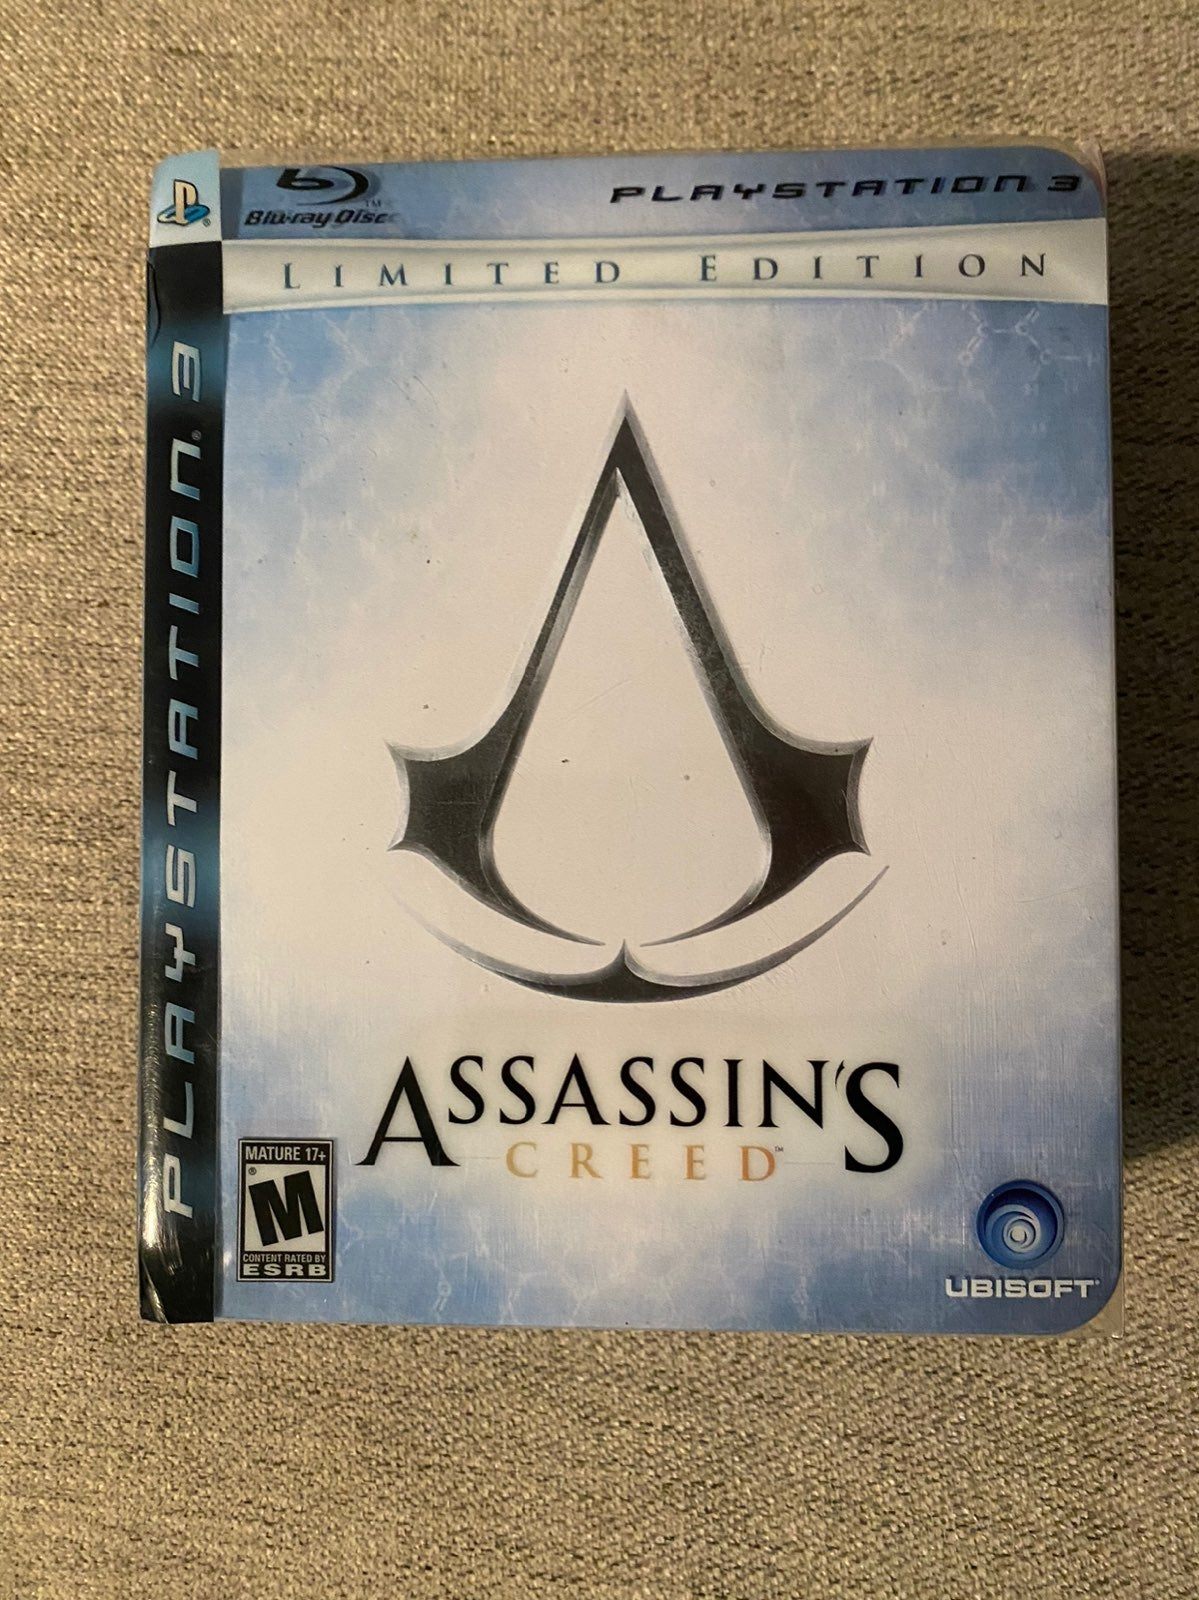 Assassins creed collectors edition